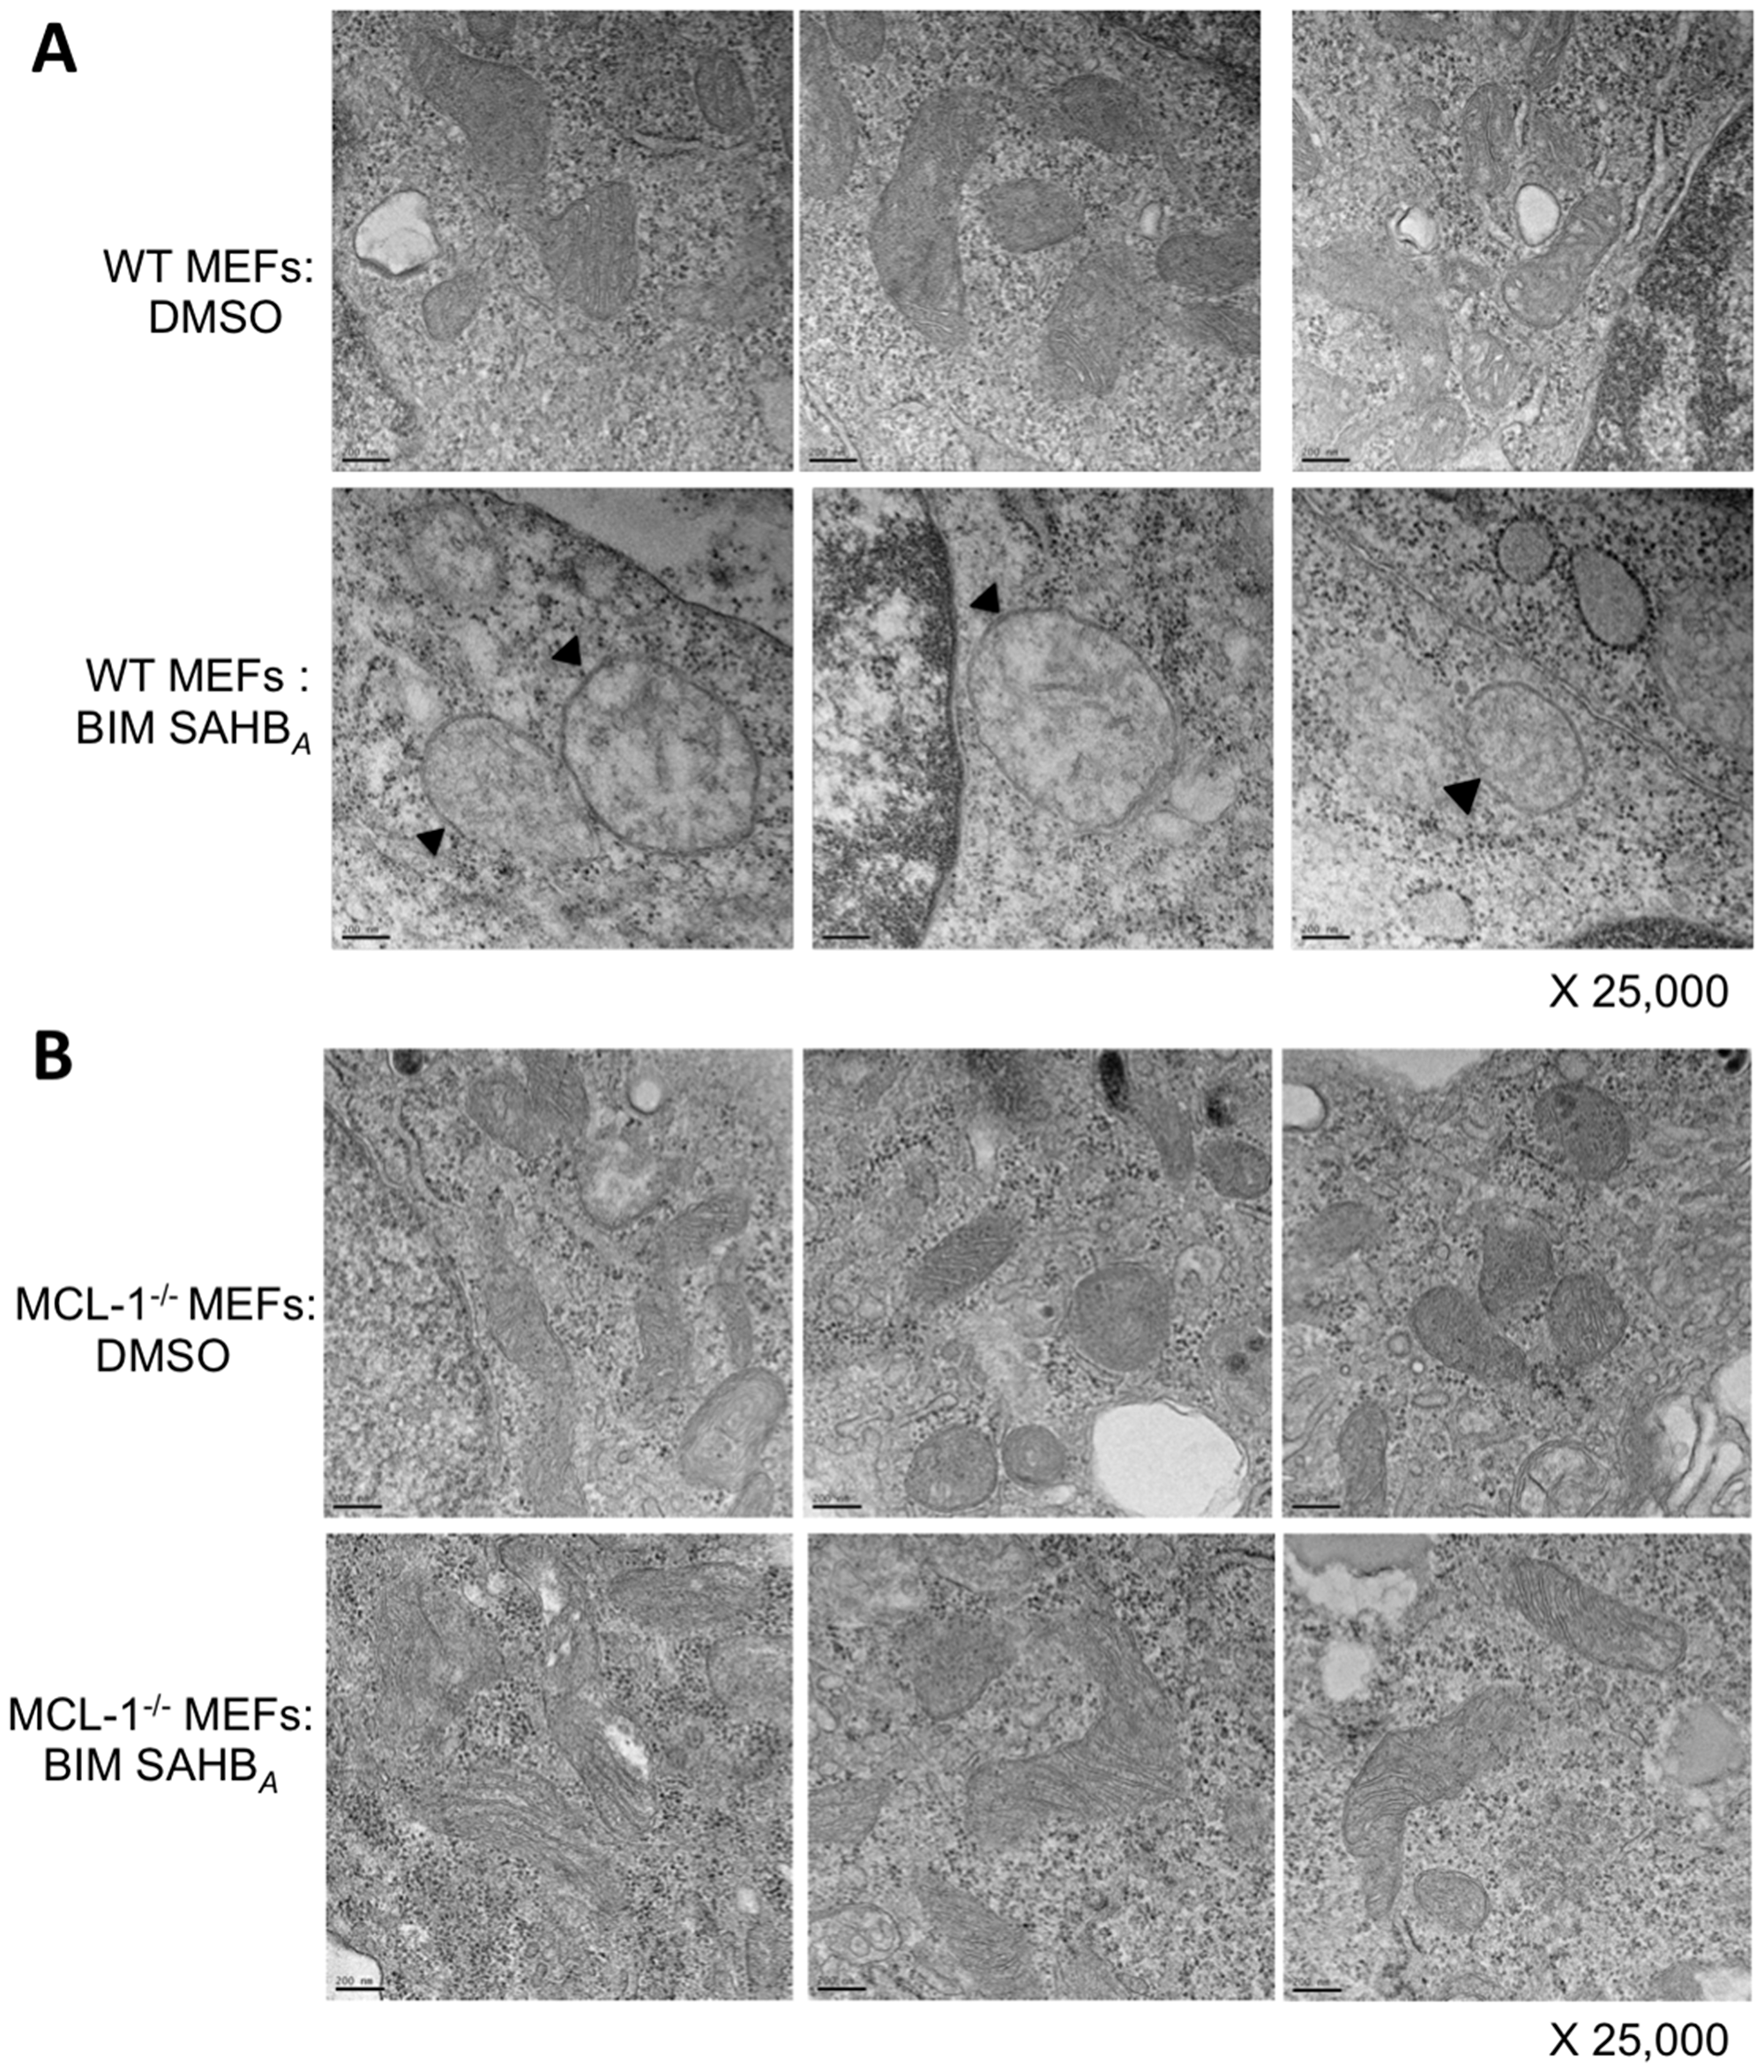 BIM SAHBA induces characteristic hallmarks of apoptosis at the level of the mitochondria in the presence of MCL-1.